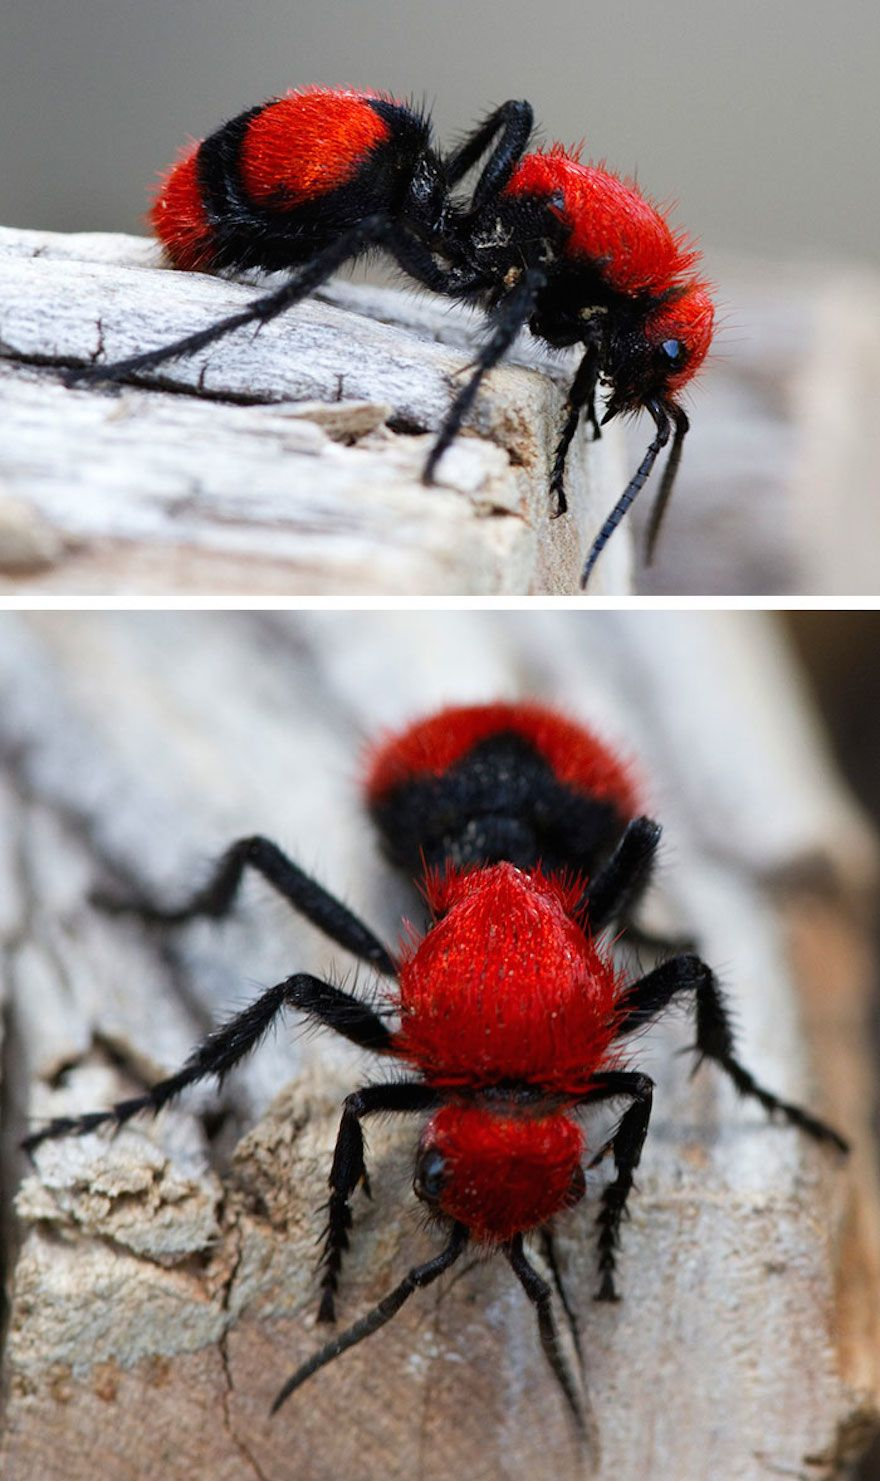 Red Velvet Ant   Interestingly, this 'ant' is actually a wasp from the Mutillidae family, which include over 3,000 different species. The females are wingless and resemble giant ants made of red velvet.